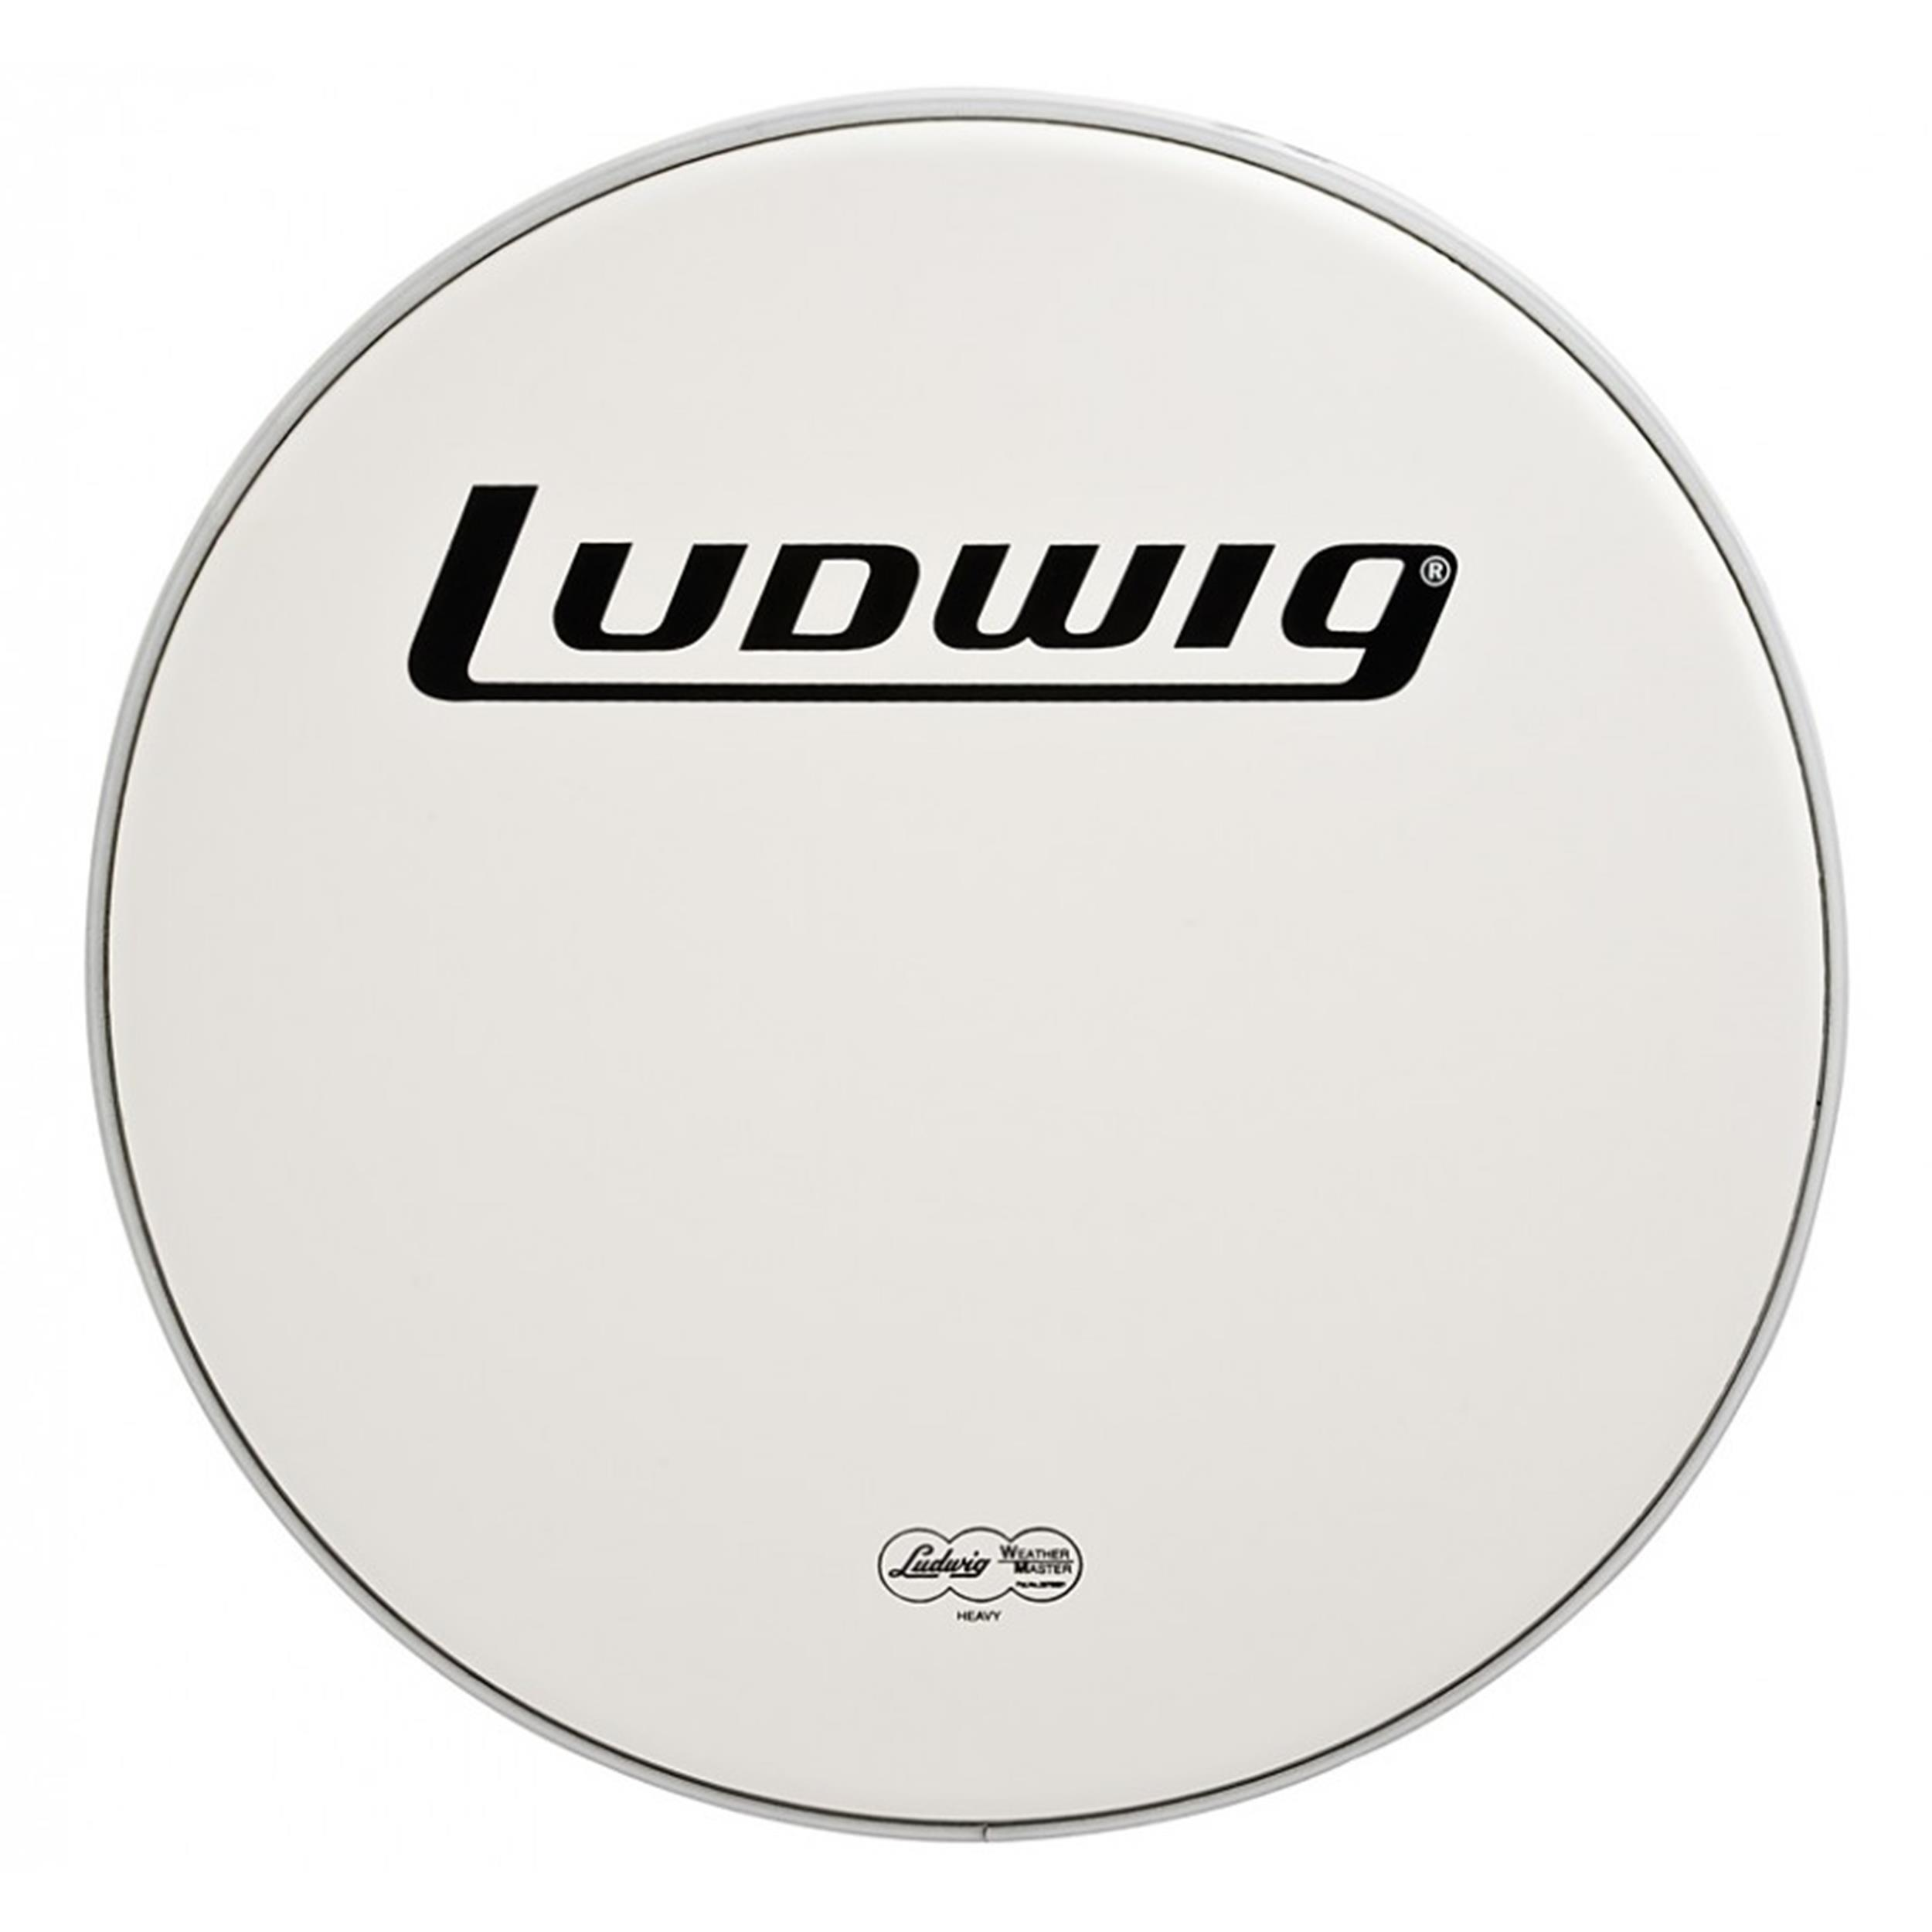 LUDWIG LW7320 - PELLE CASSA 20 PWR COLL.WHITE SABB